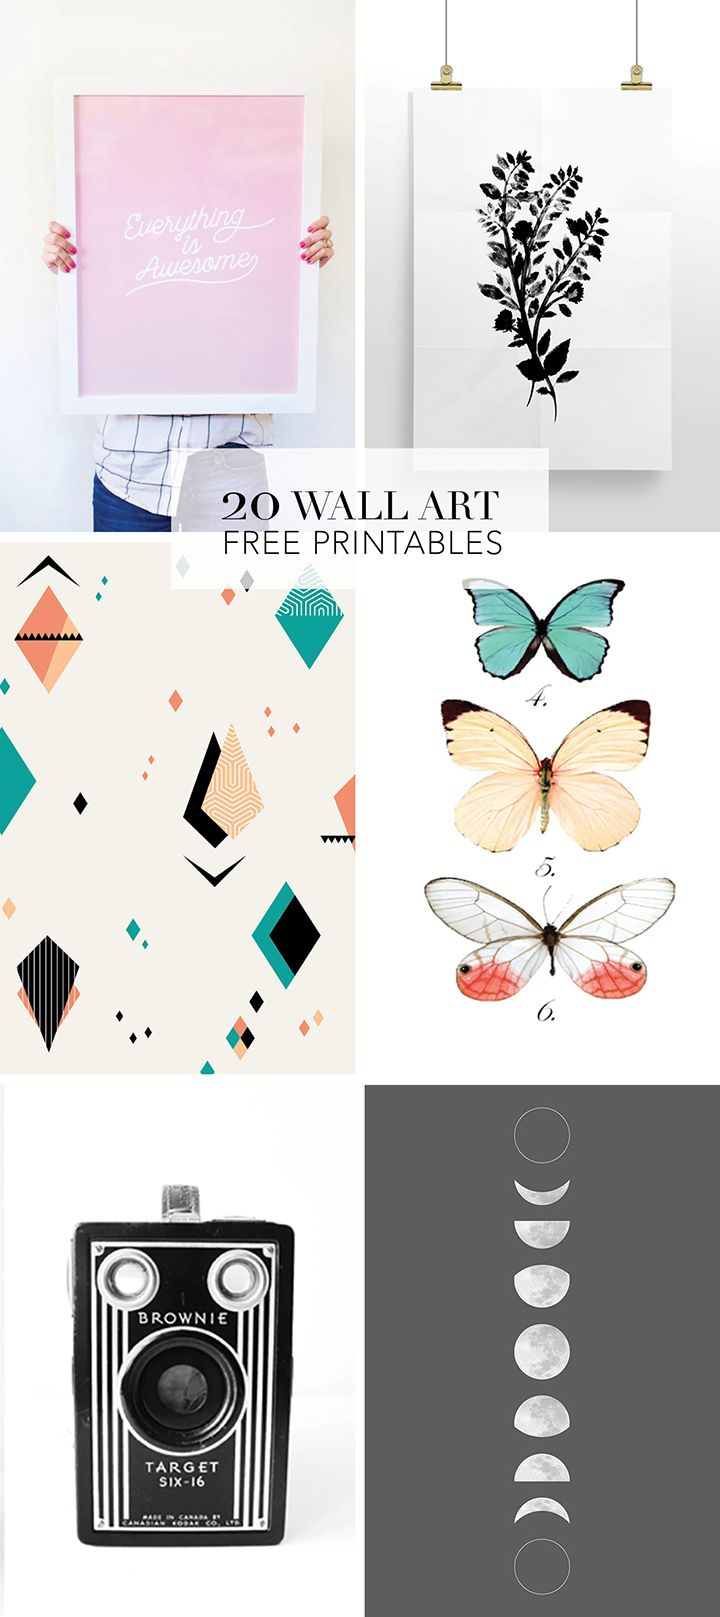 20 Favorite Wall Art Free Printables | Stationary & Printing - Free Printable Wall Art Prints